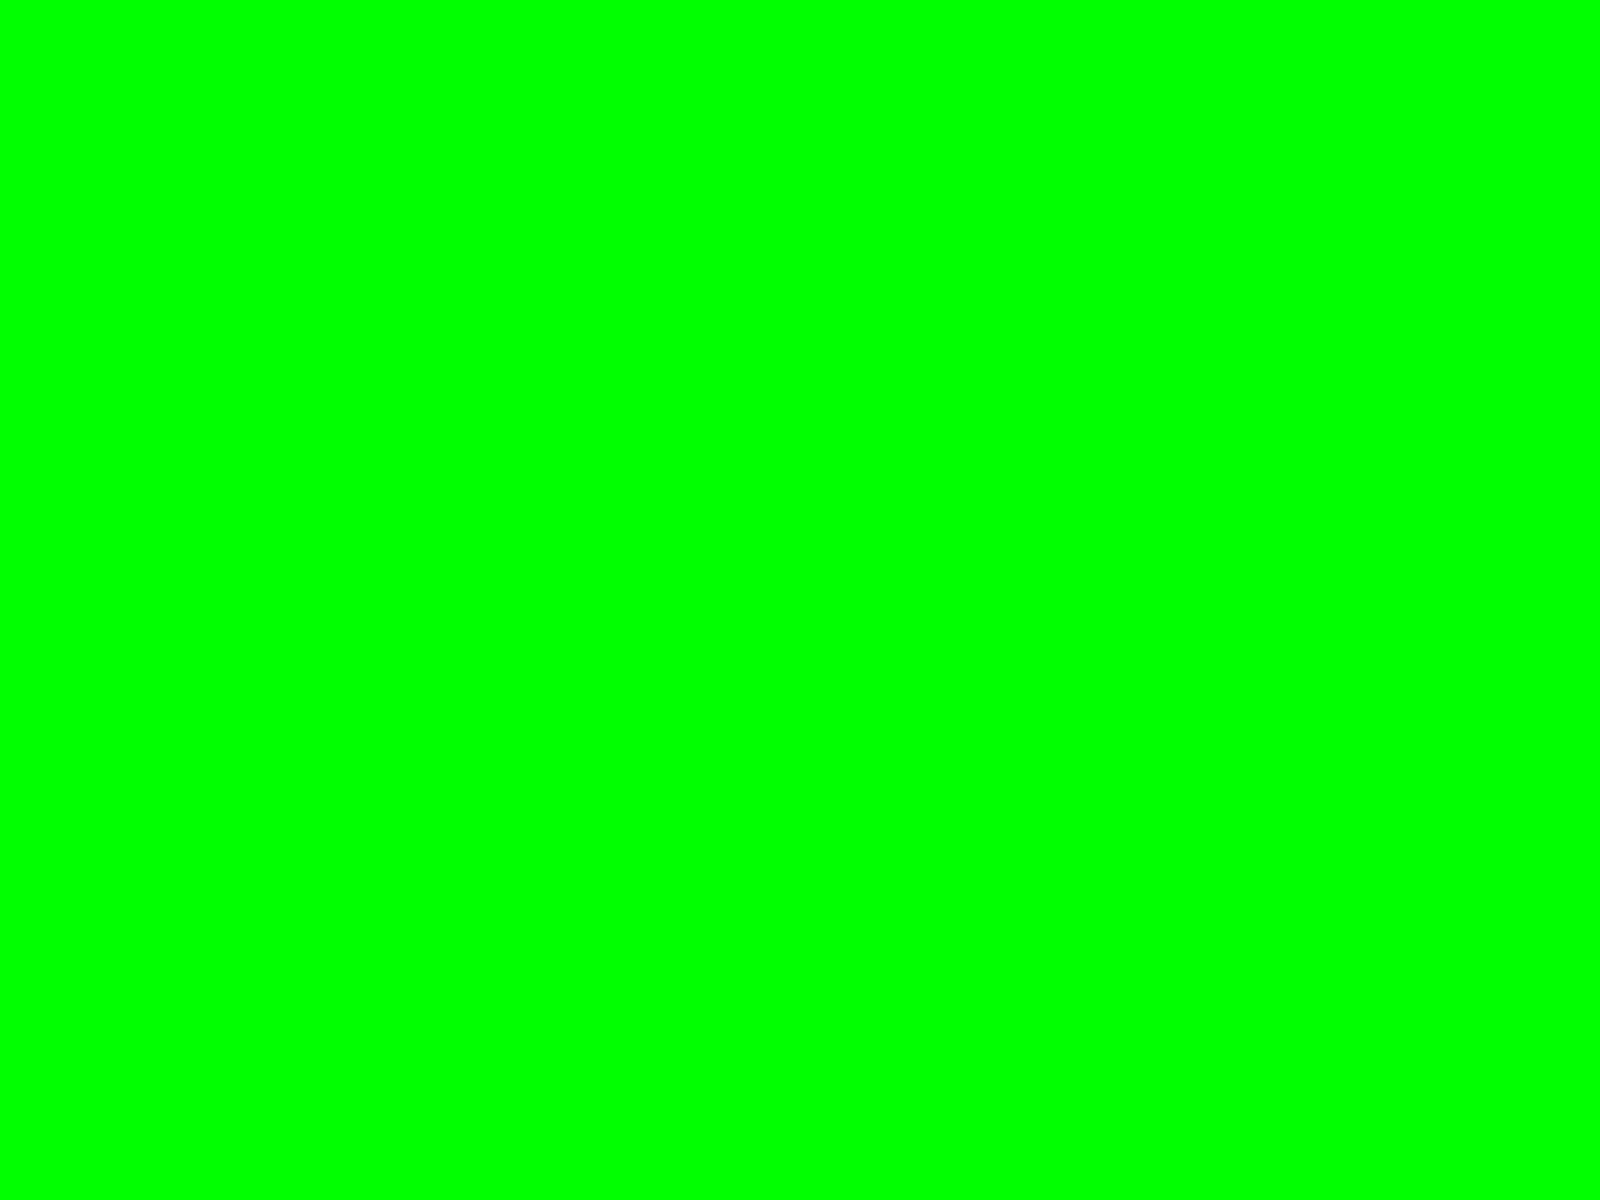 1600x1200 Green X11 Gui Green Solid Color Background